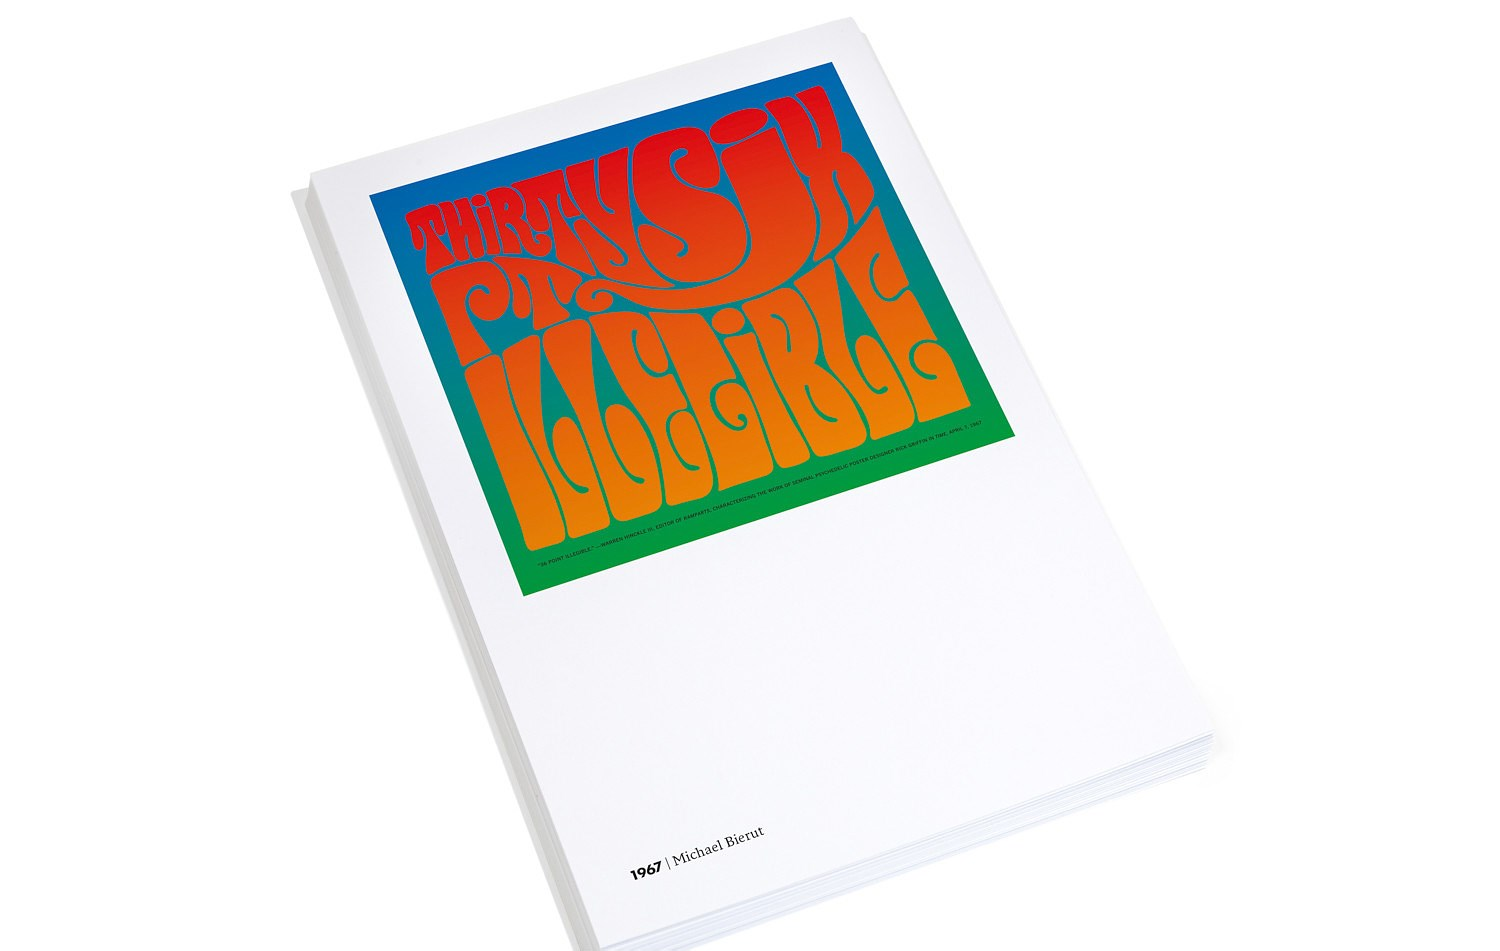 AIGA_100_Years_of_Design_Limited_Edition_Collection_05.jpg